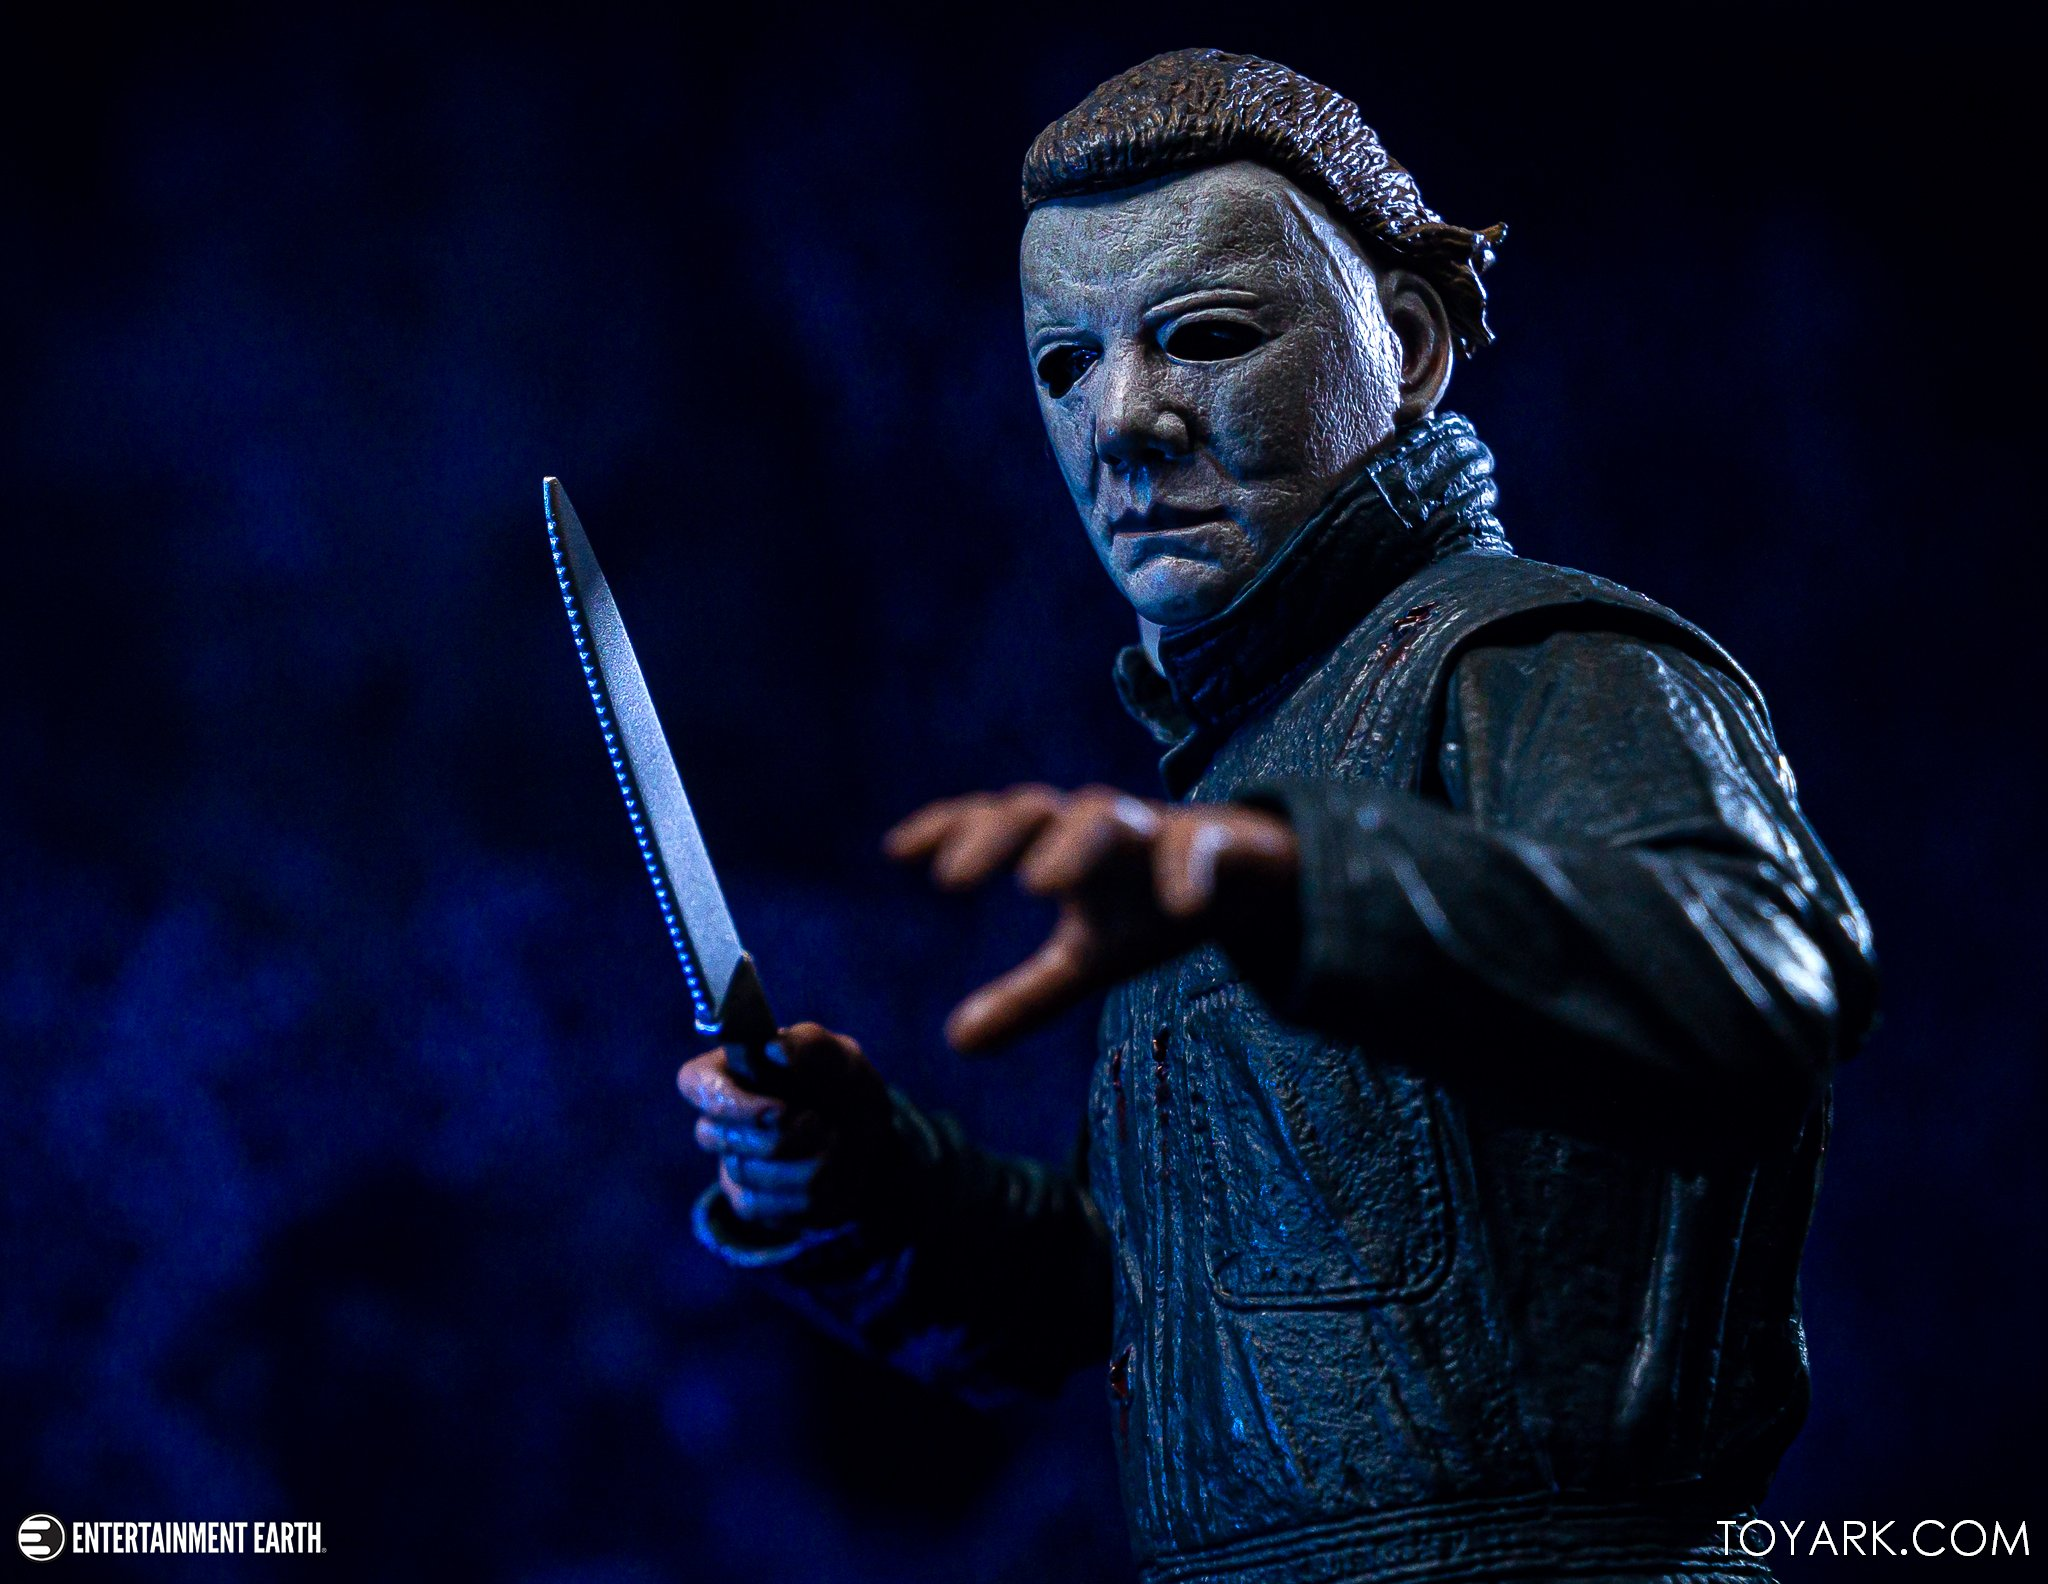 https://news.toyark.com/wp-content/uploads/sites/4/2019/10/NECA-Halloween-II-Michael-Myers-037.jpg